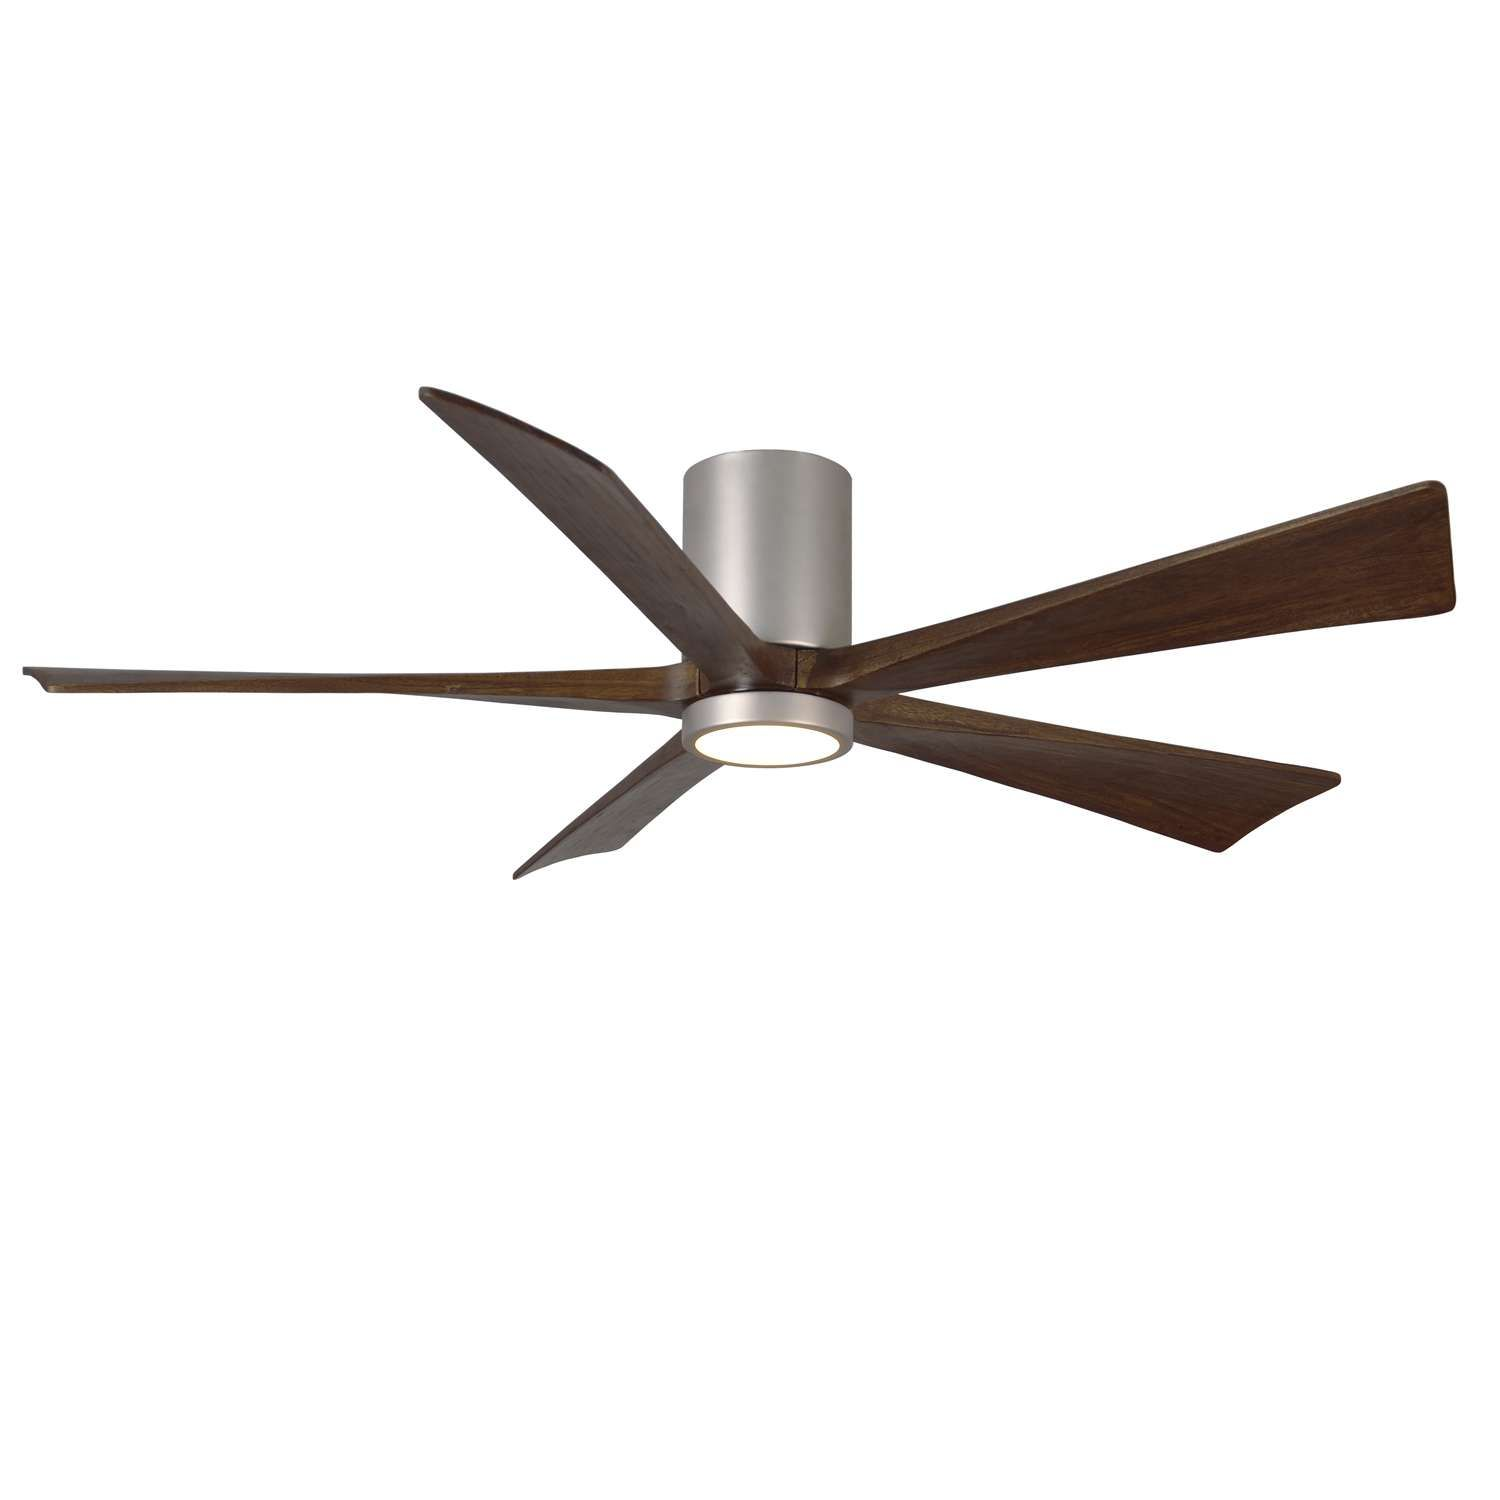 products company co modernfan pharos by welivv modern ceiling fans brands contemporary previous ceilings featured fan